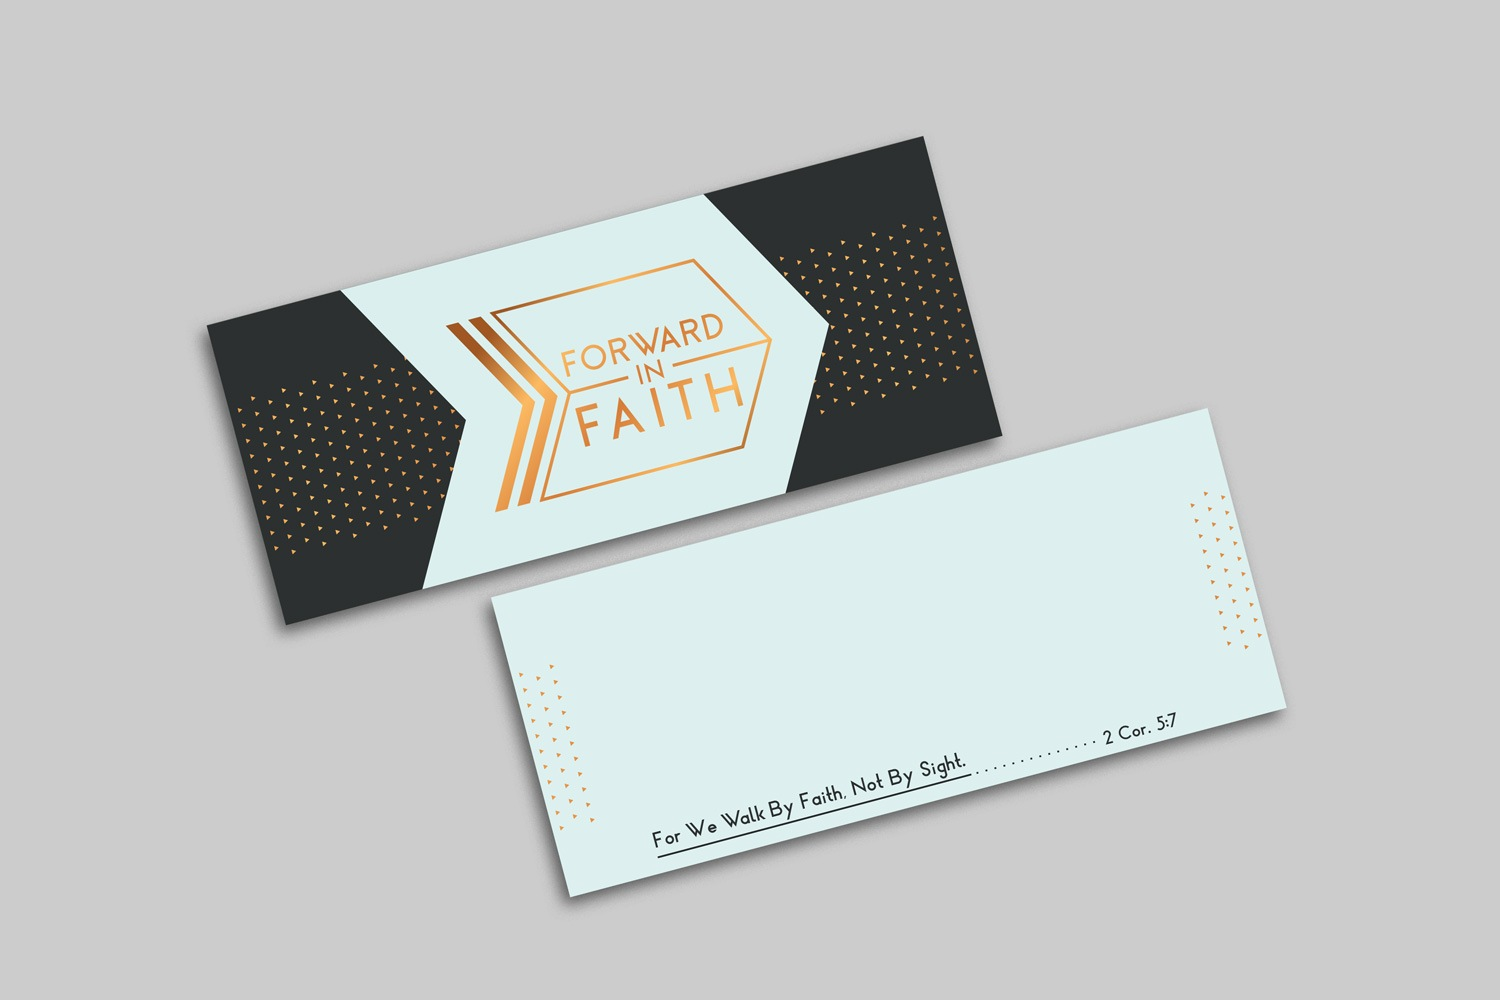 Horizontal 3.5 x 8.5 in. Notecard for Church Capital Campaigns by Abstract Union in Lincoln, NE